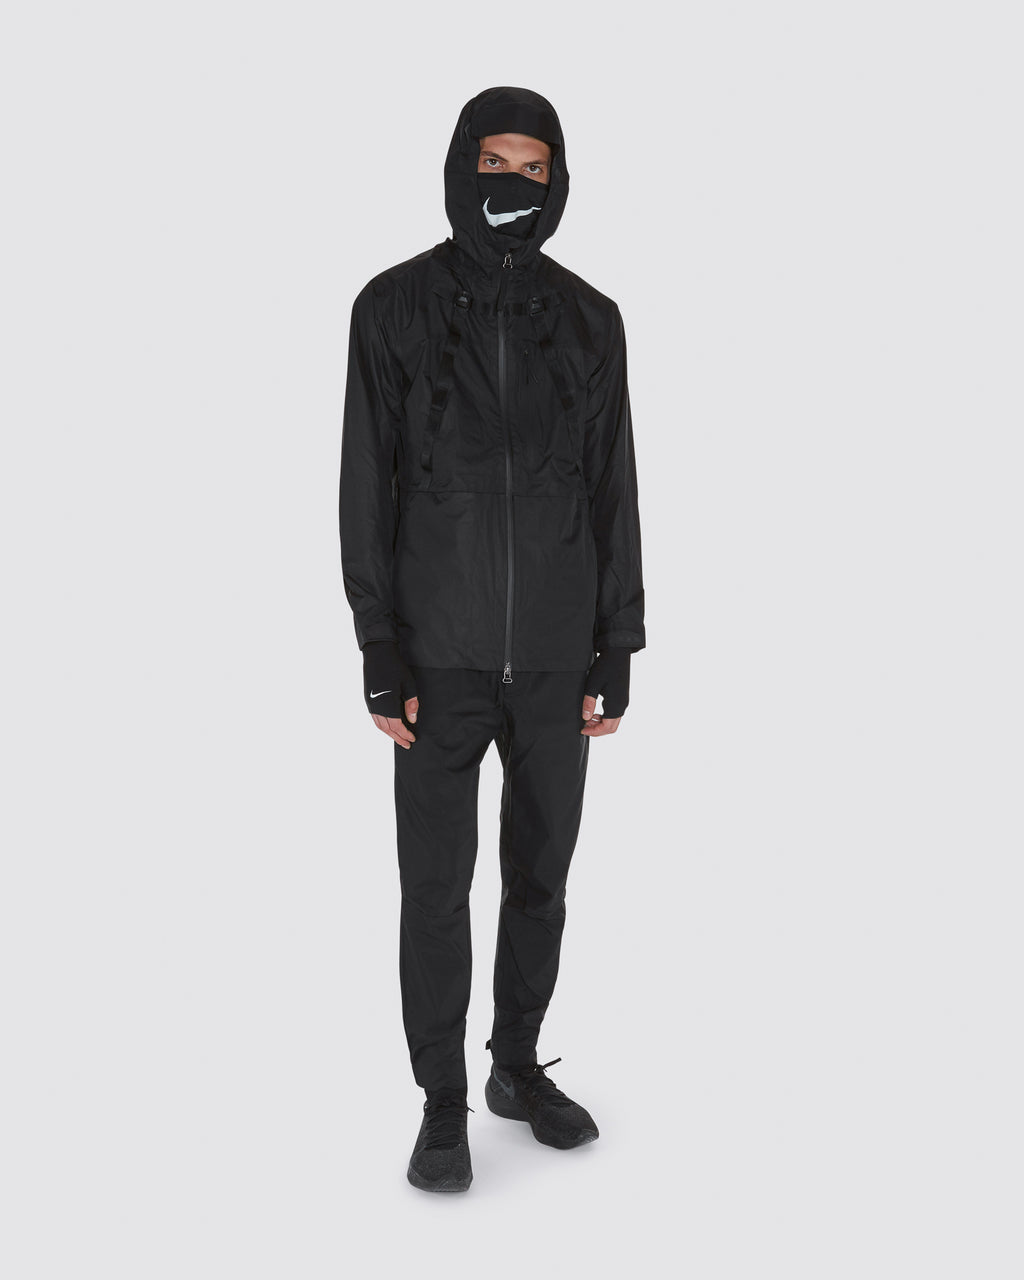 NIKE x MMW Windbreaker With Half Mask